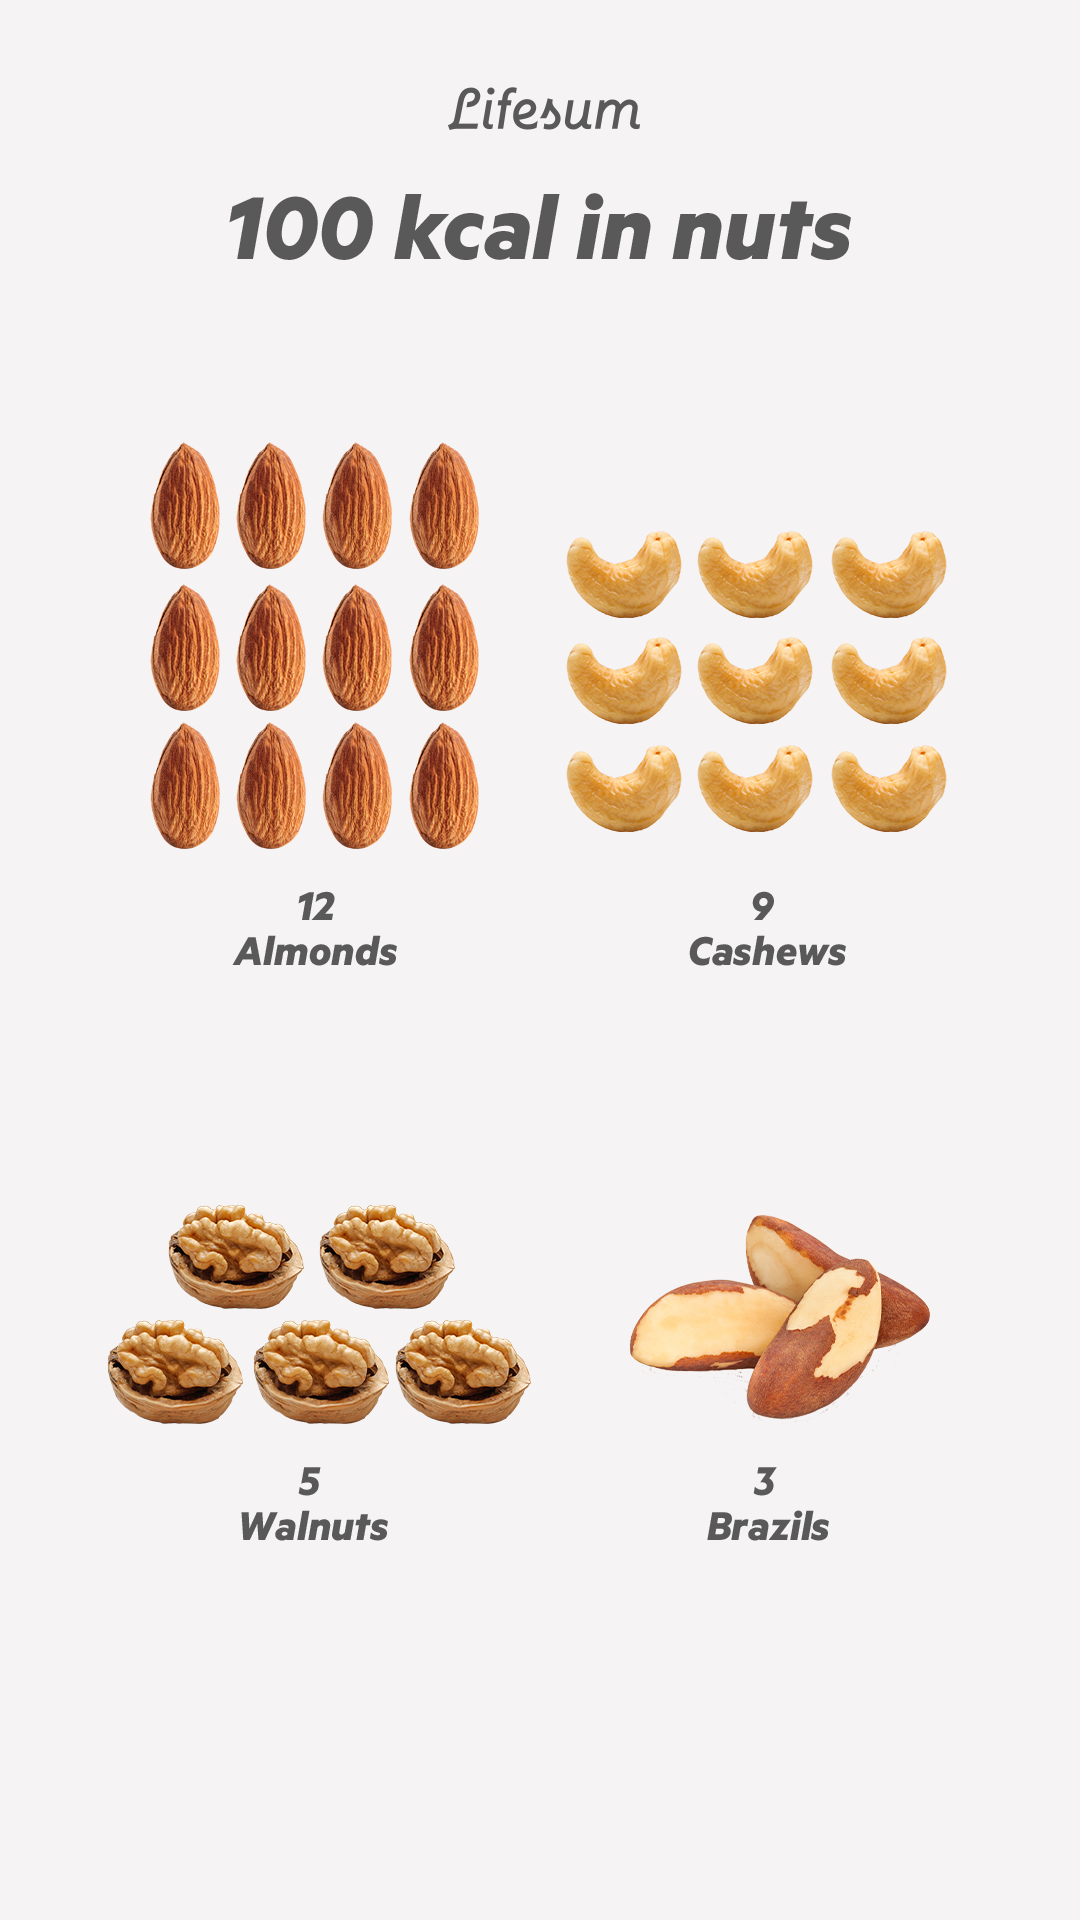 100 kcal in nuts